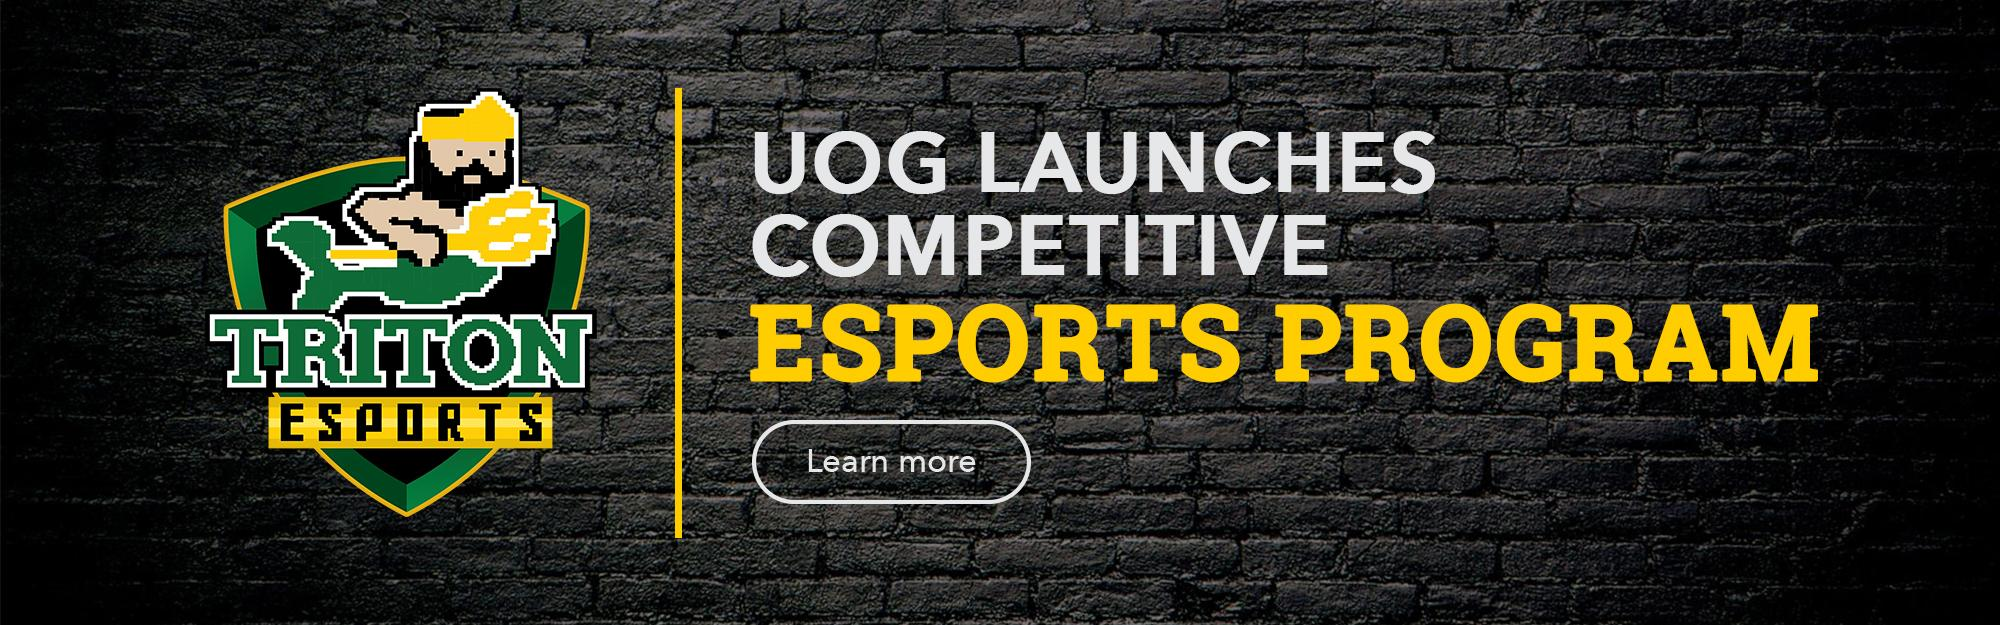 Click to visit the Triton Esports website